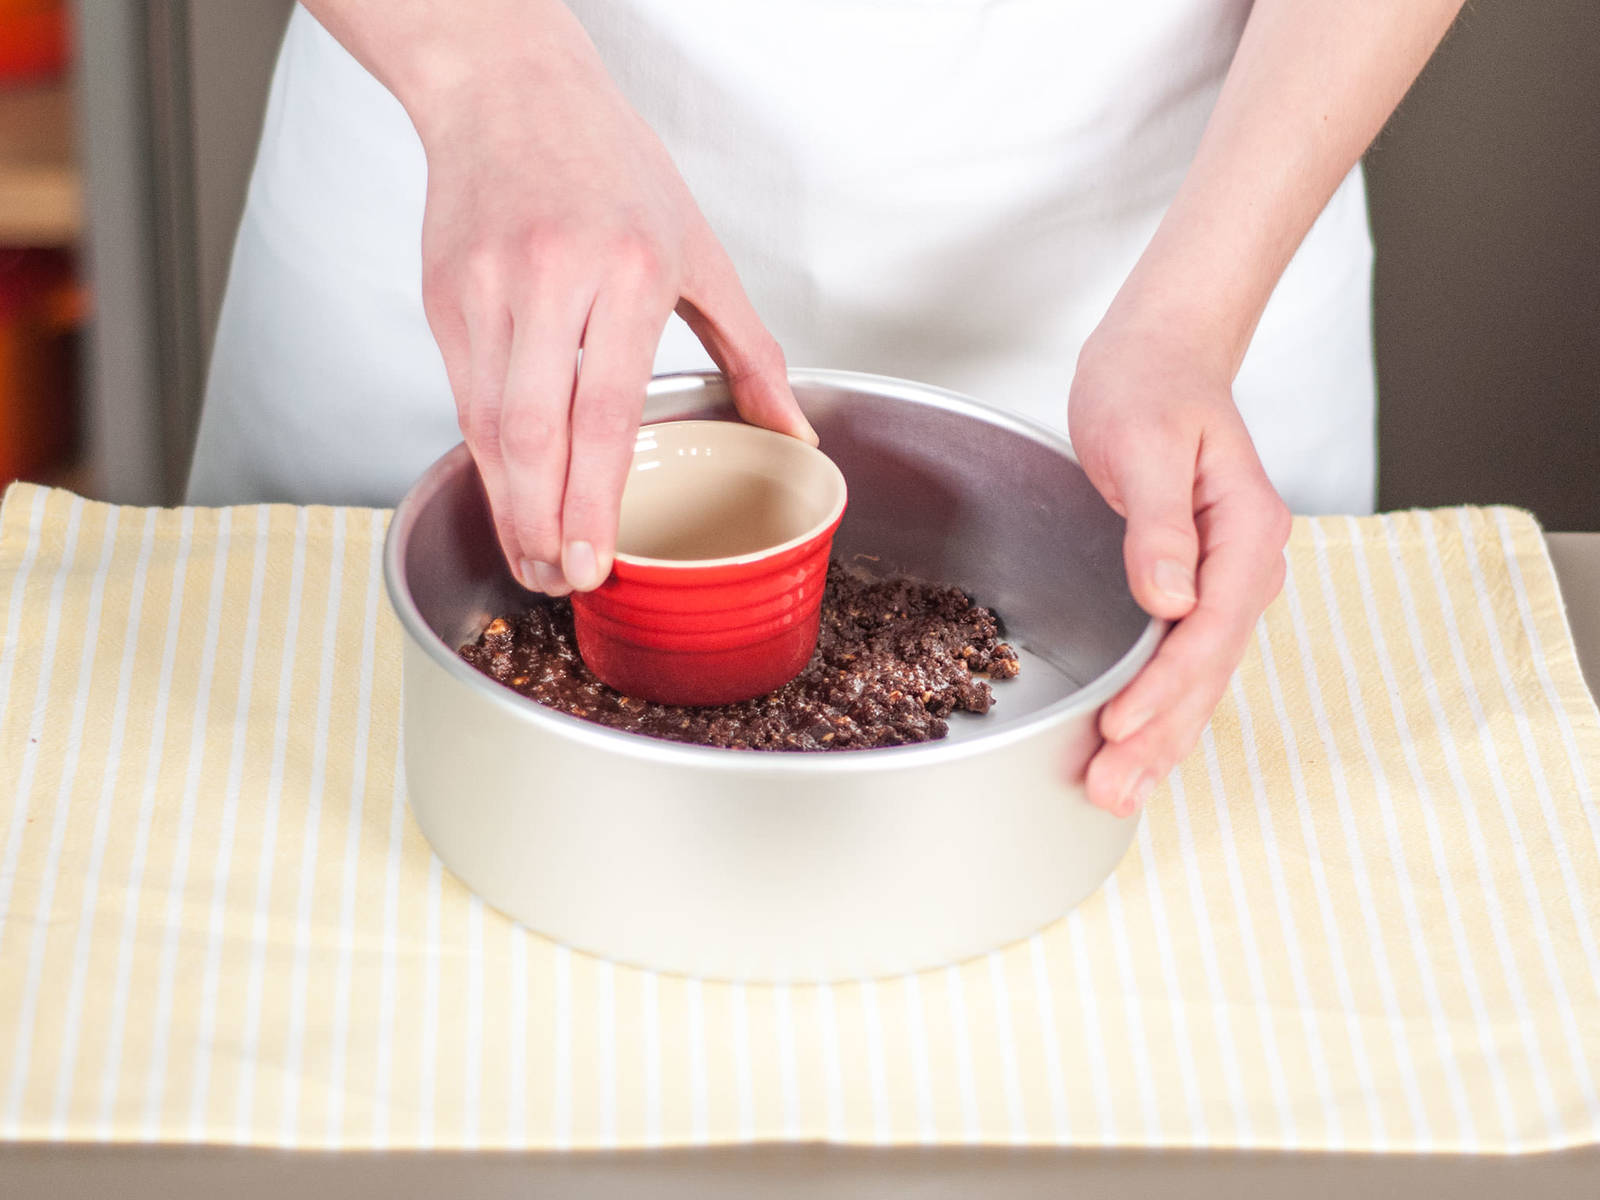 Add cookie crumb mixture to a round baking form and press firmly into bottom of baking form.